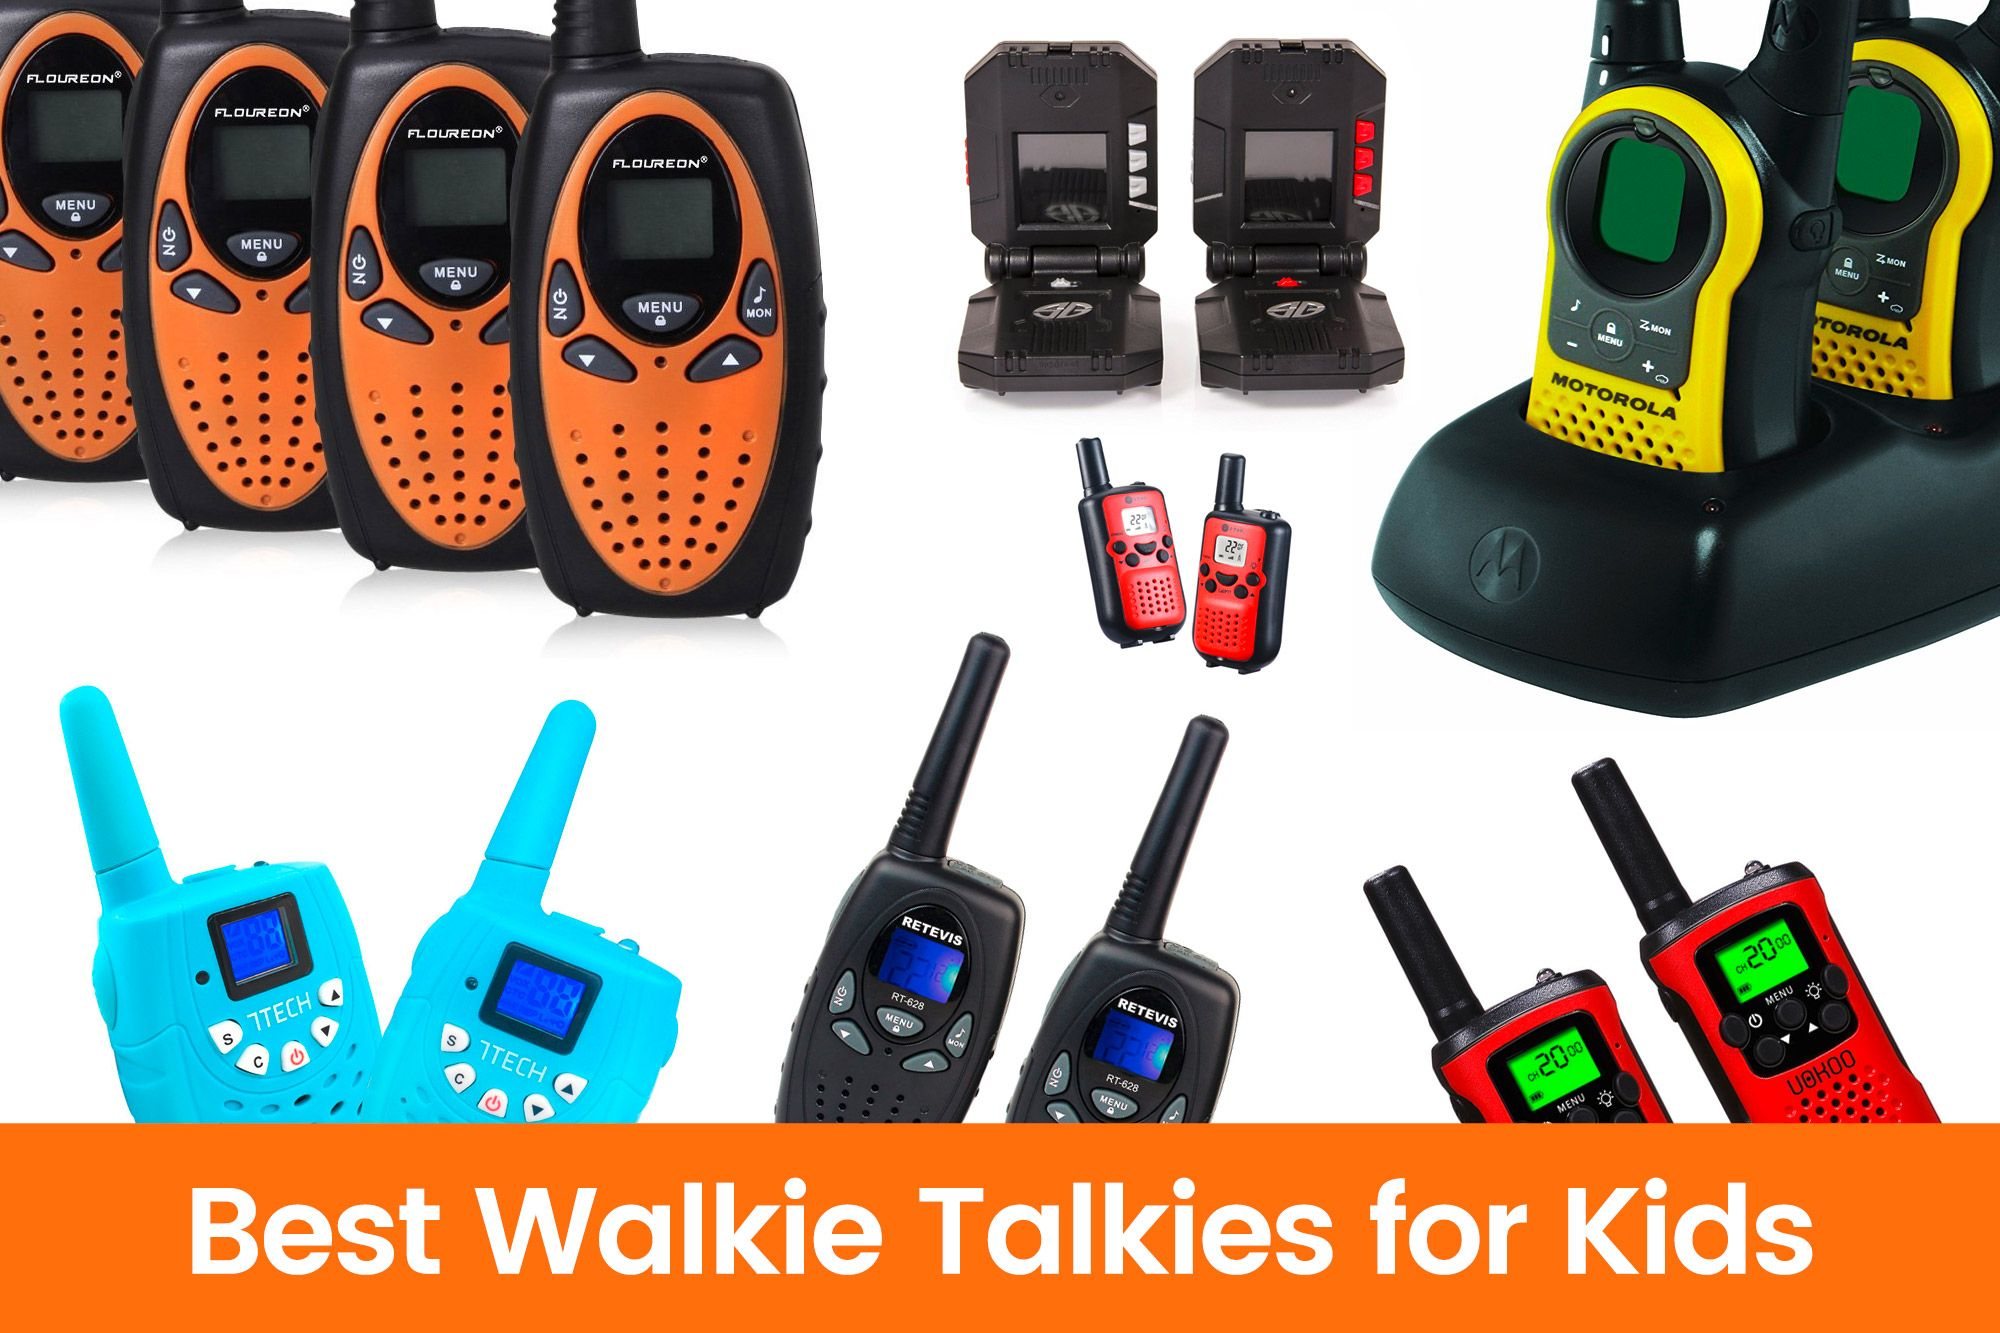 10 Best Walkie Talkies for Kids Tech Gear for Kids